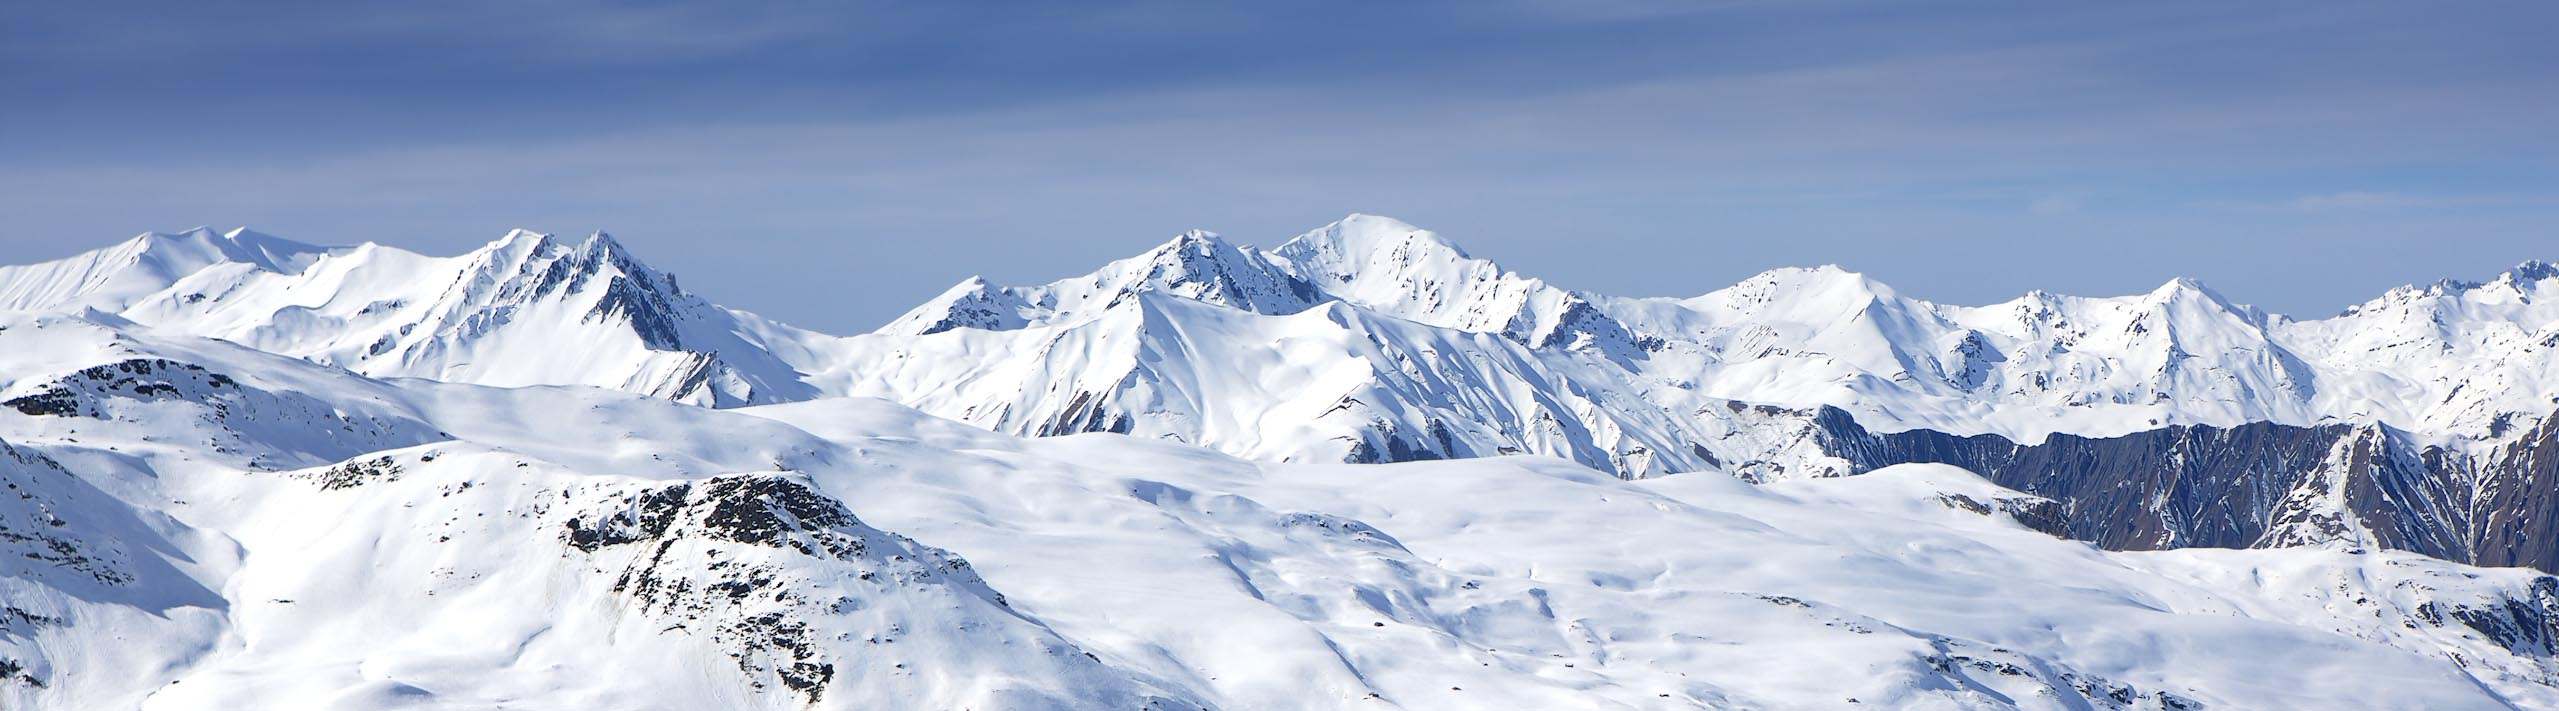 Landscape Photograph The French Alps of snow on a mountain range by Nick Oakley Photography